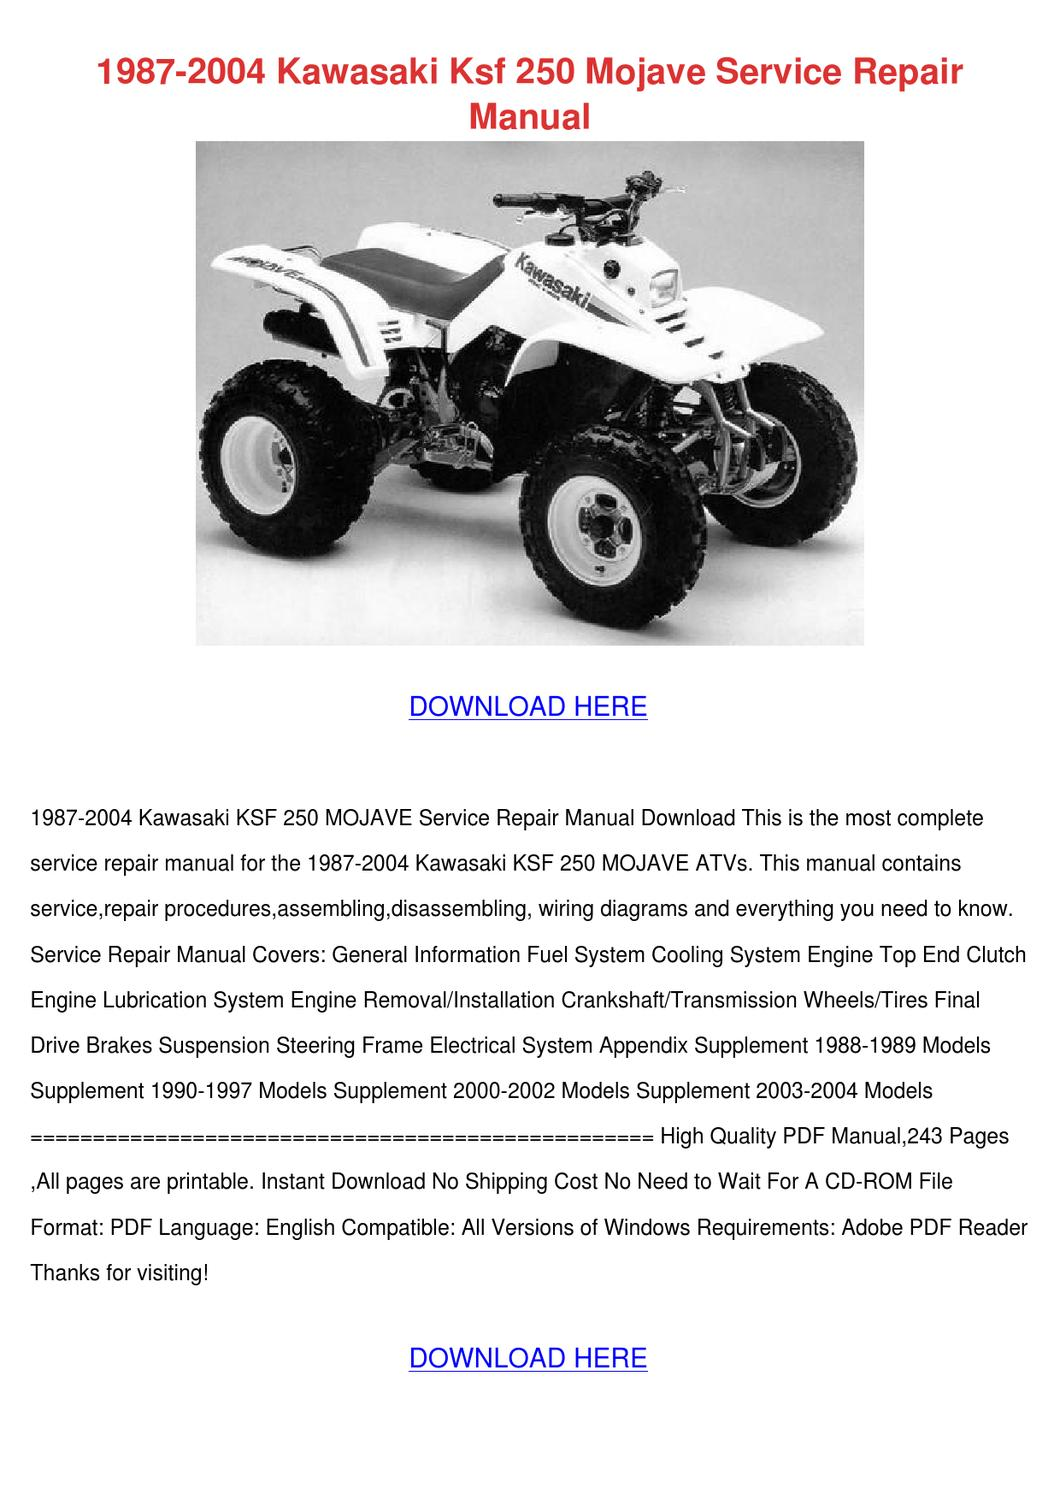 hight resolution of kawasaki mojave ksf wiring diagram kawasaki 110 atv wiring 1997 kawasaki mojave 250 wiring diagram 2001 kawasaki mojave 250 wiring diagram